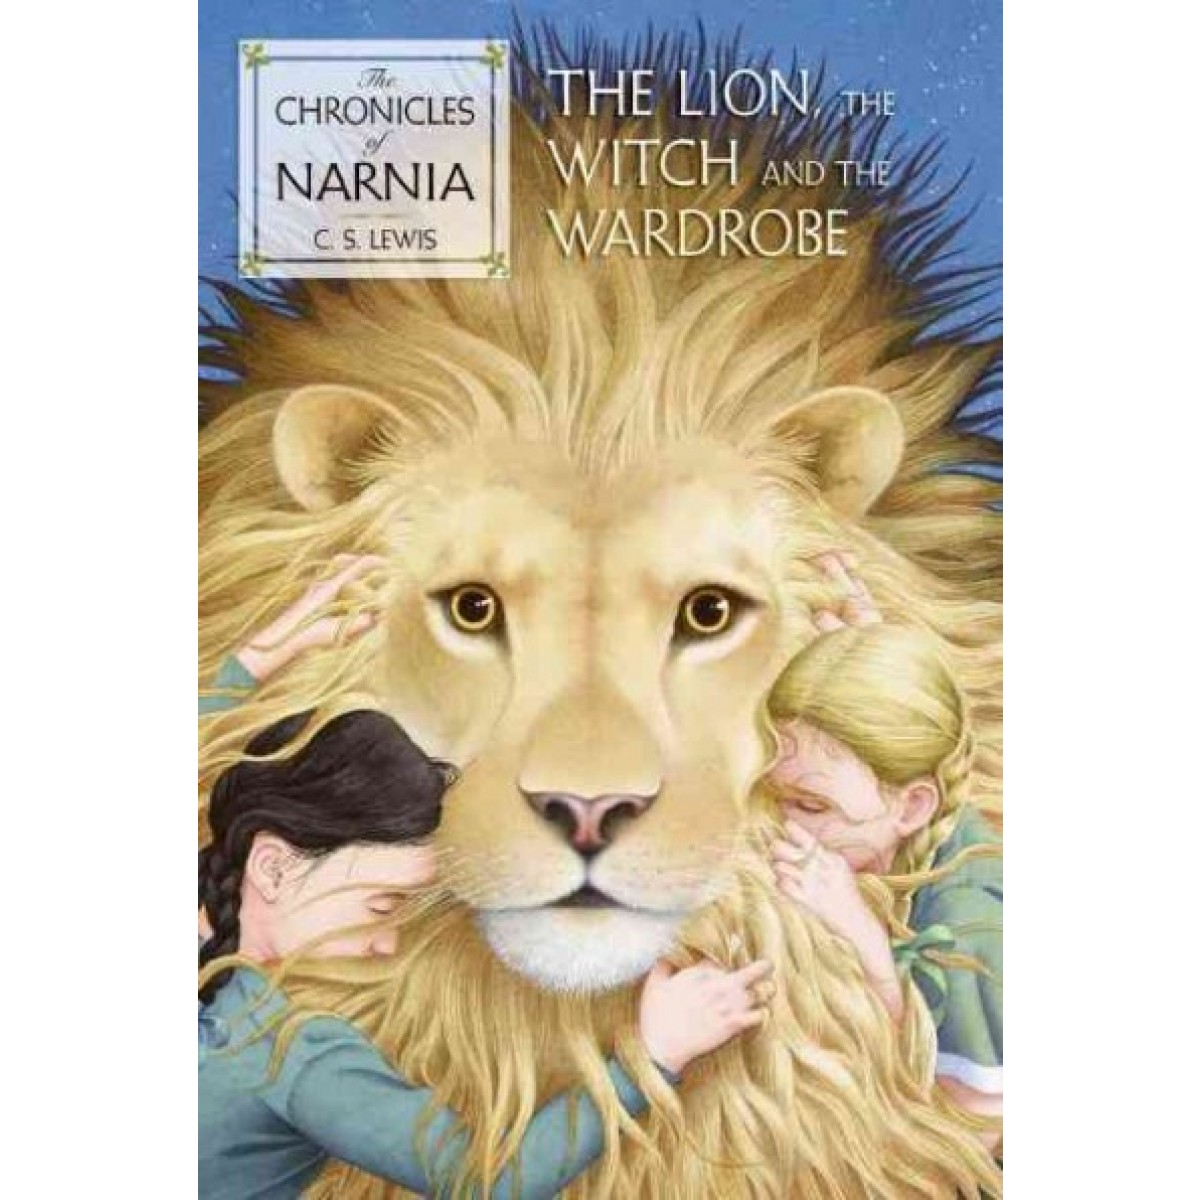 The Lion, the Witch and the Wardrobe (The Chronicles of